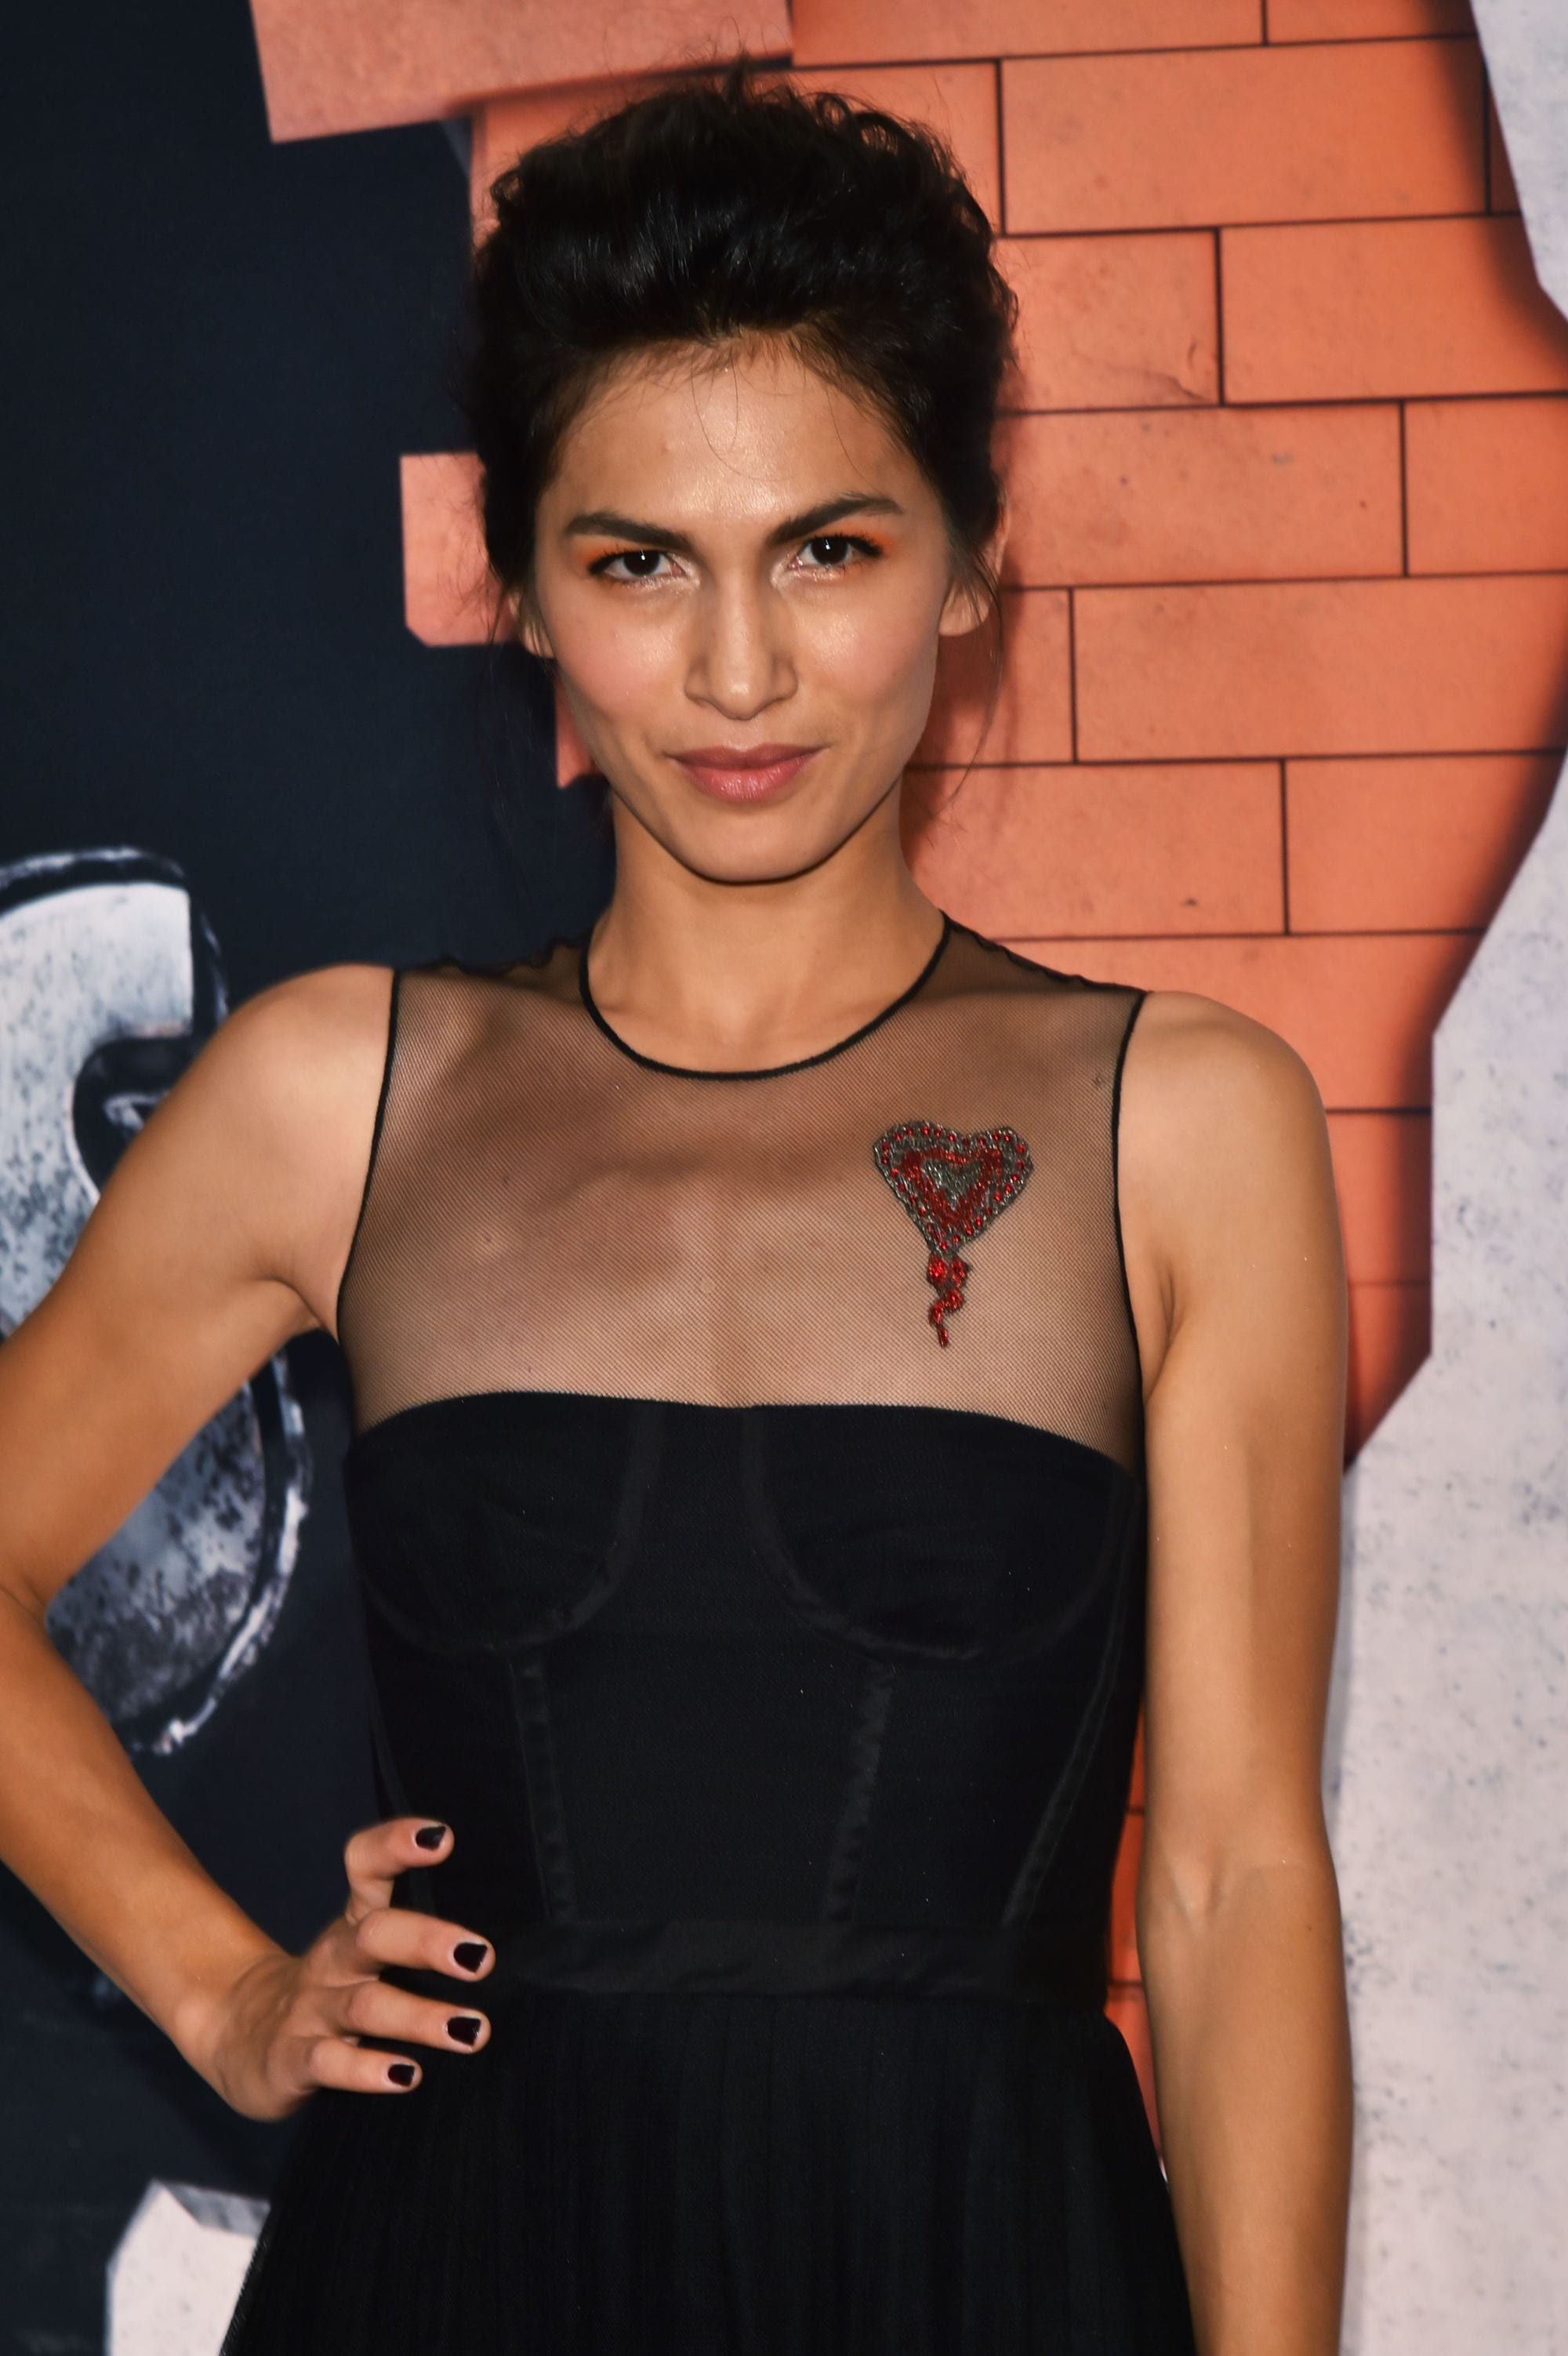 Elodie Yung wears her dark tresses in a textured bouffant swept back updo worn with black dress with sheer detailing